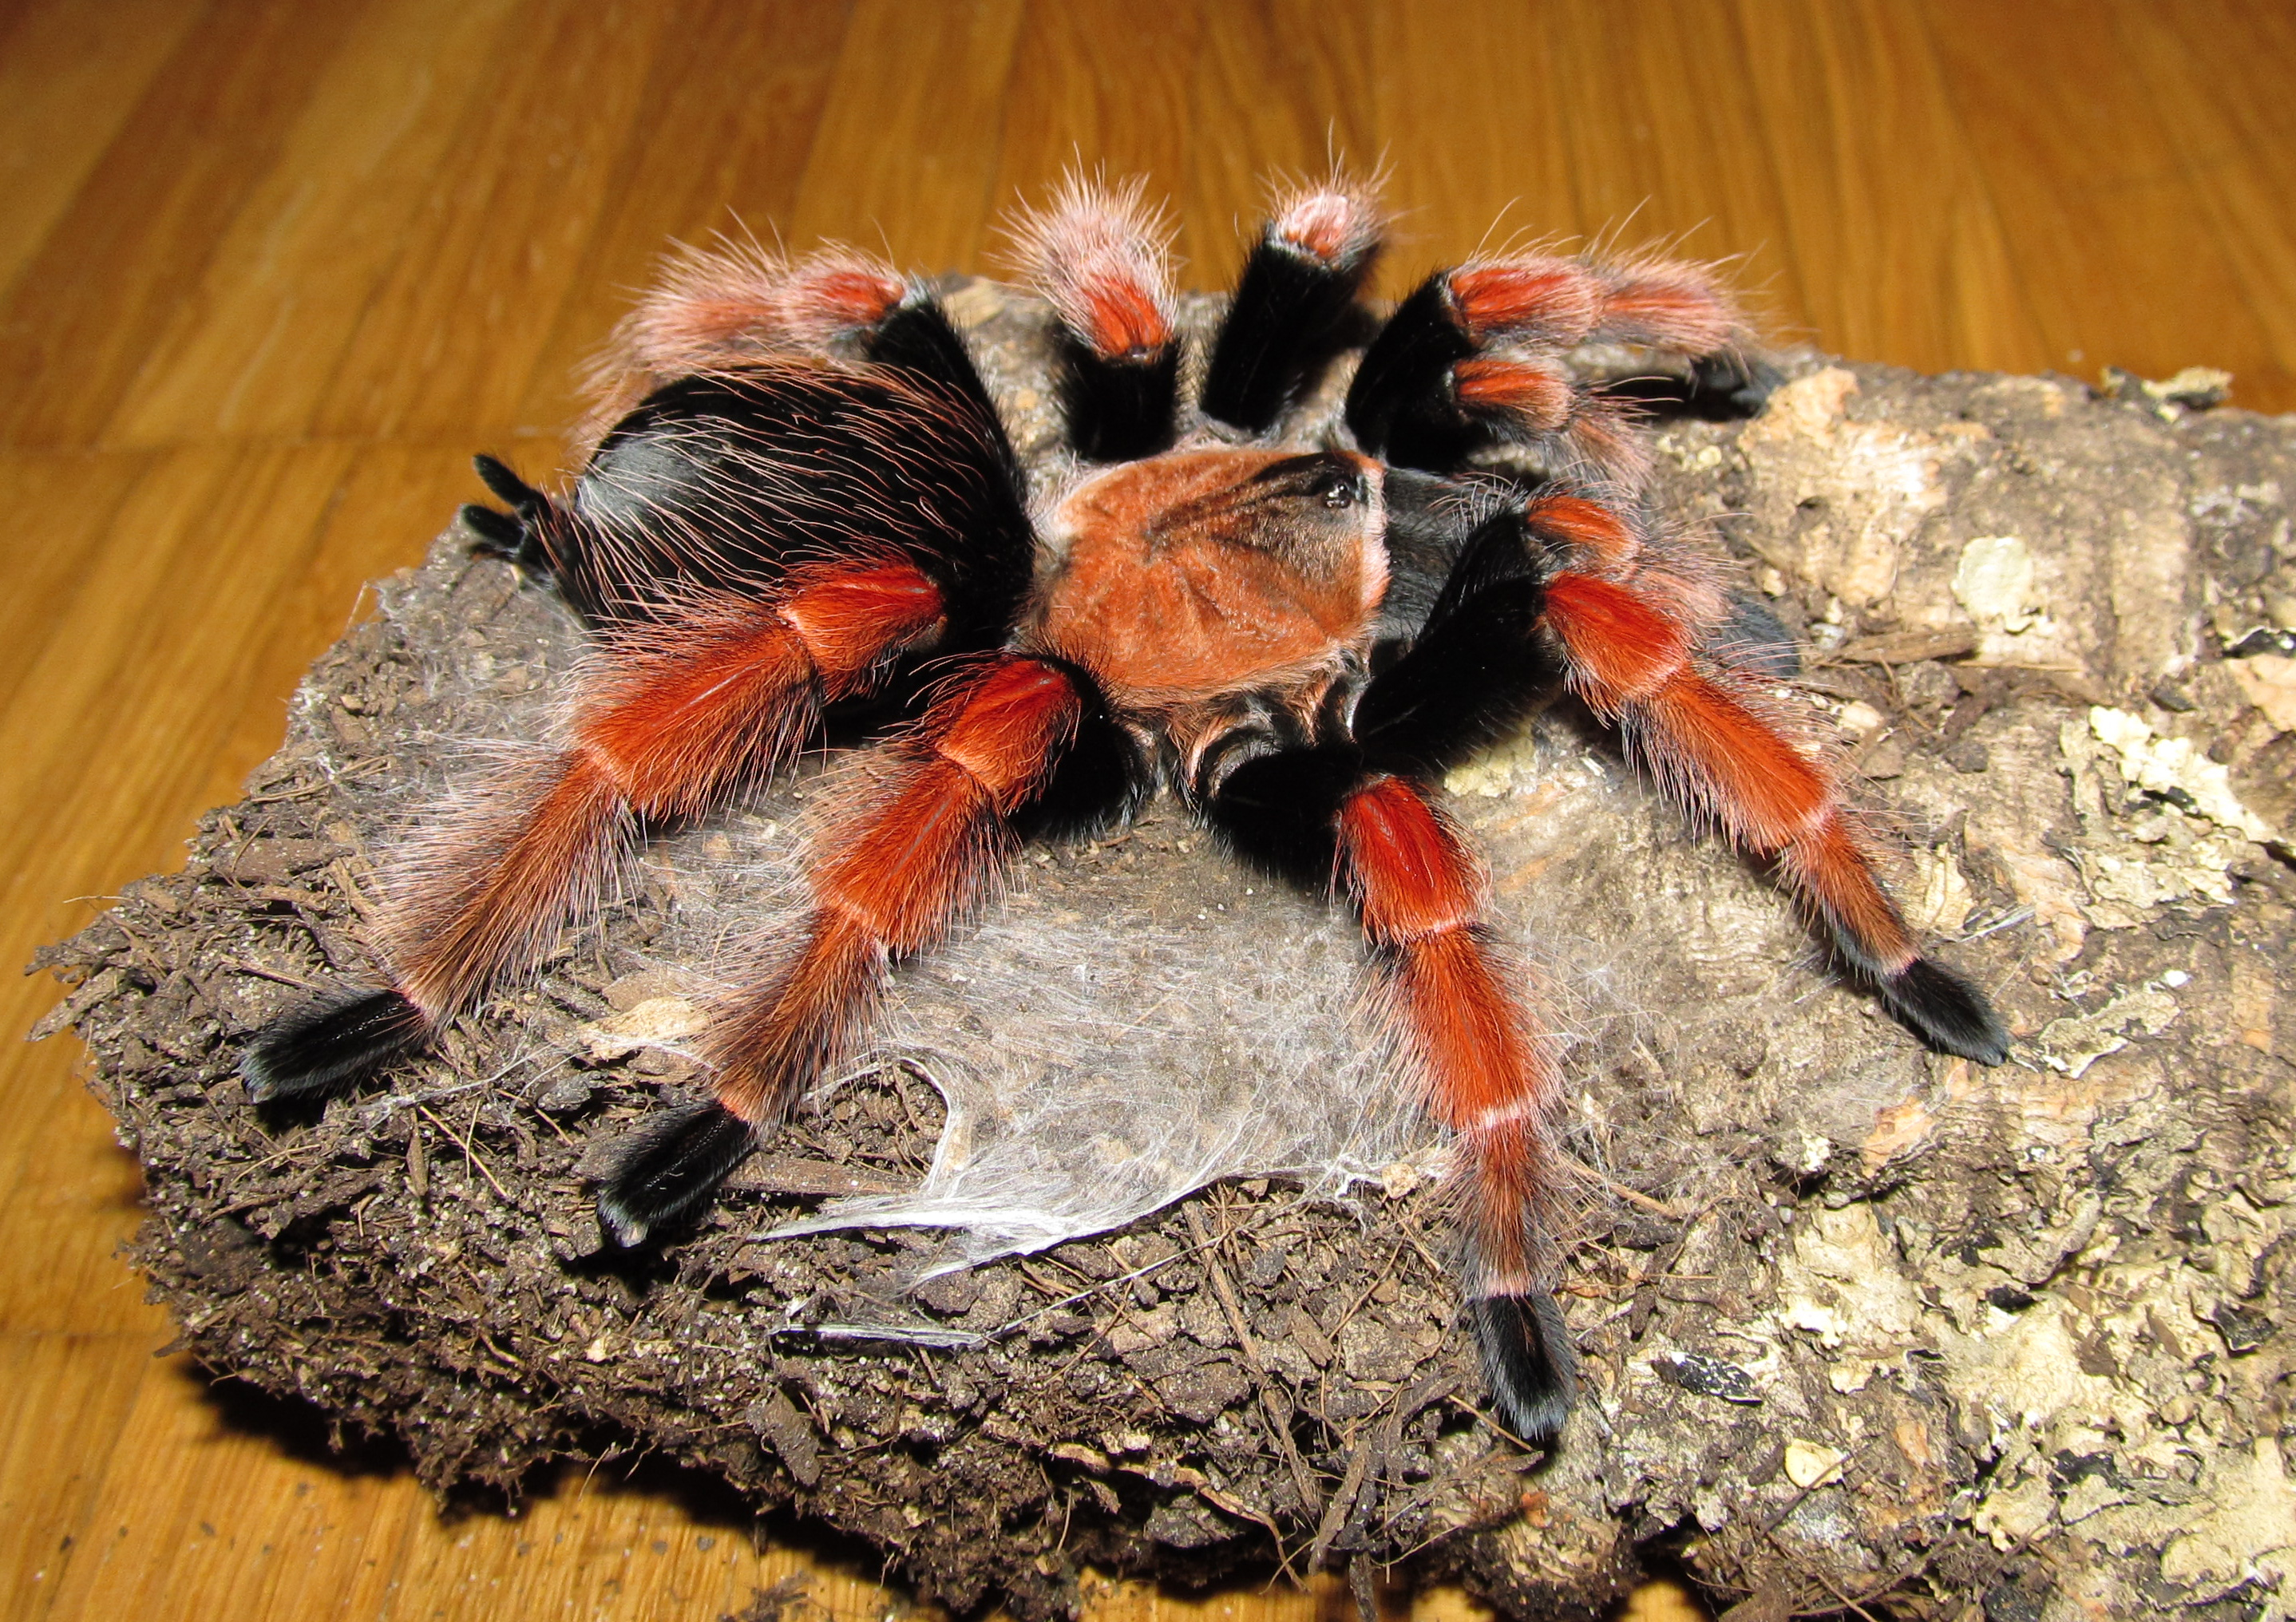 Brachypelma_boehmei_-_female_side